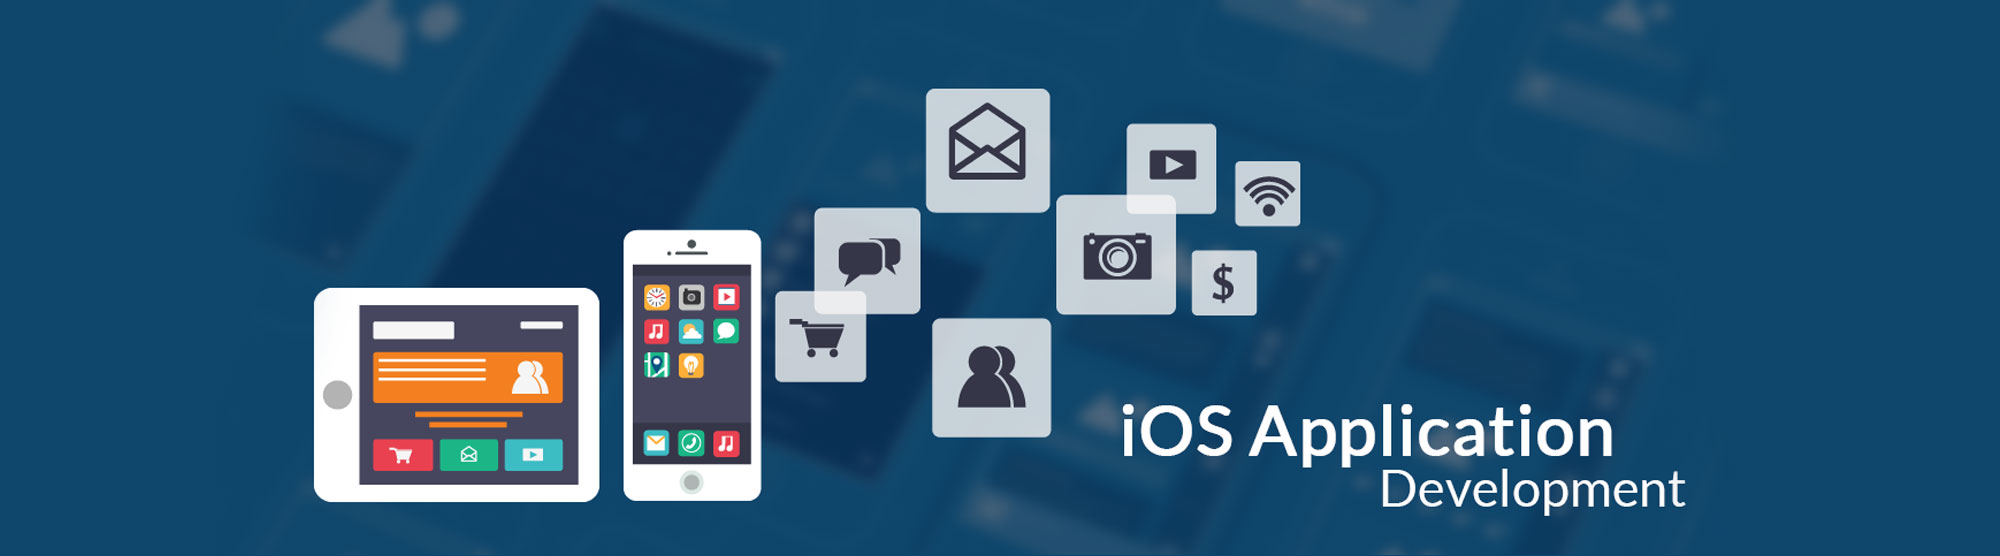 ios-development